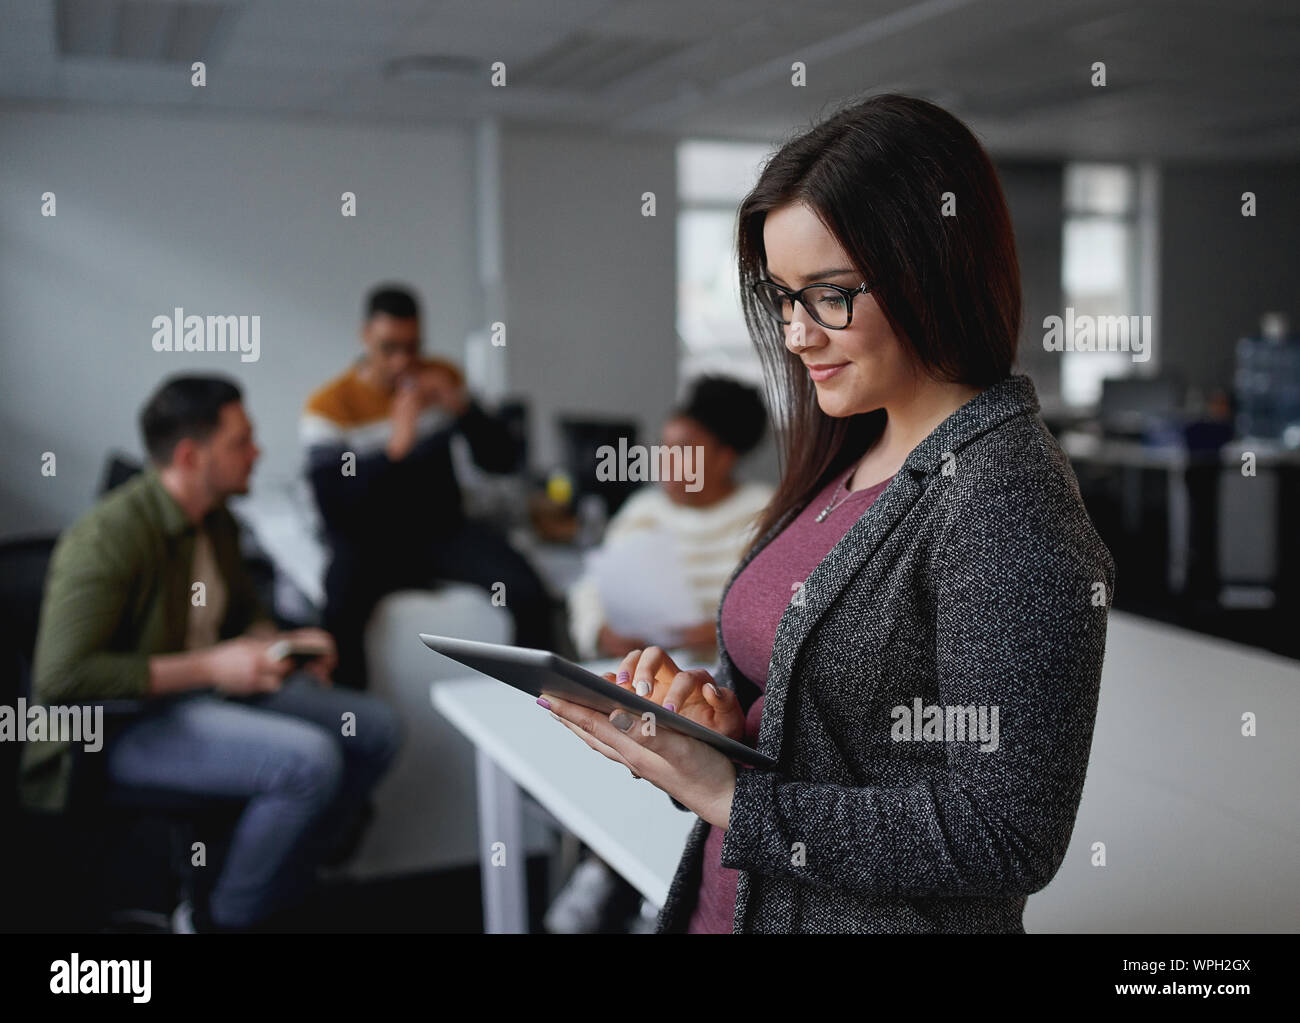 Happy young businesswoman using digital tablet in office and colleagues discussing in background Stock Photo